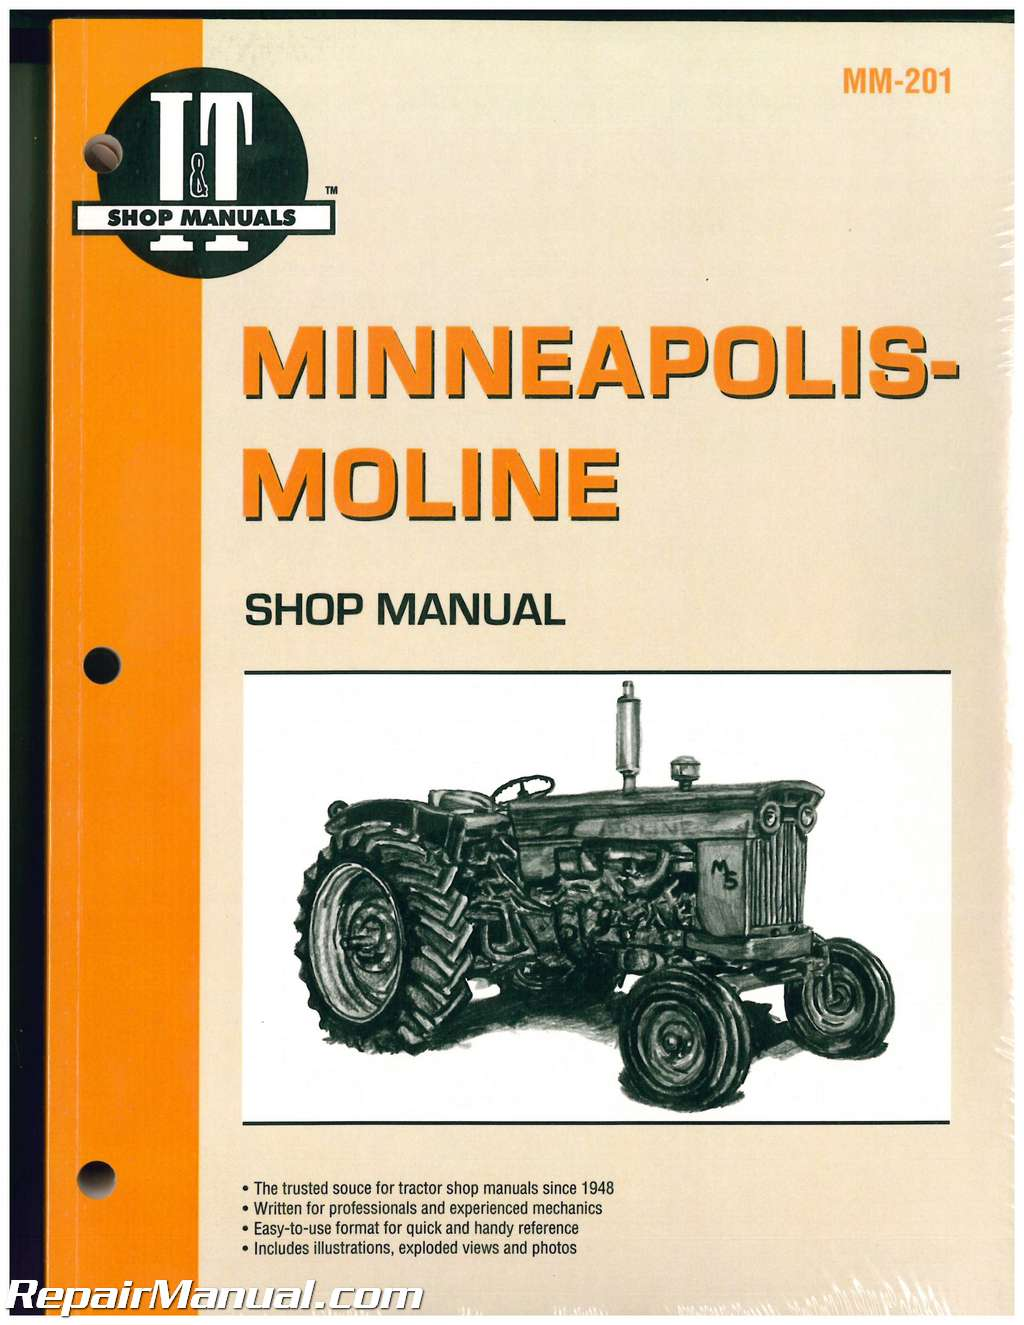 minneapolis moline shop service farm tractor manual rh repairmanual com